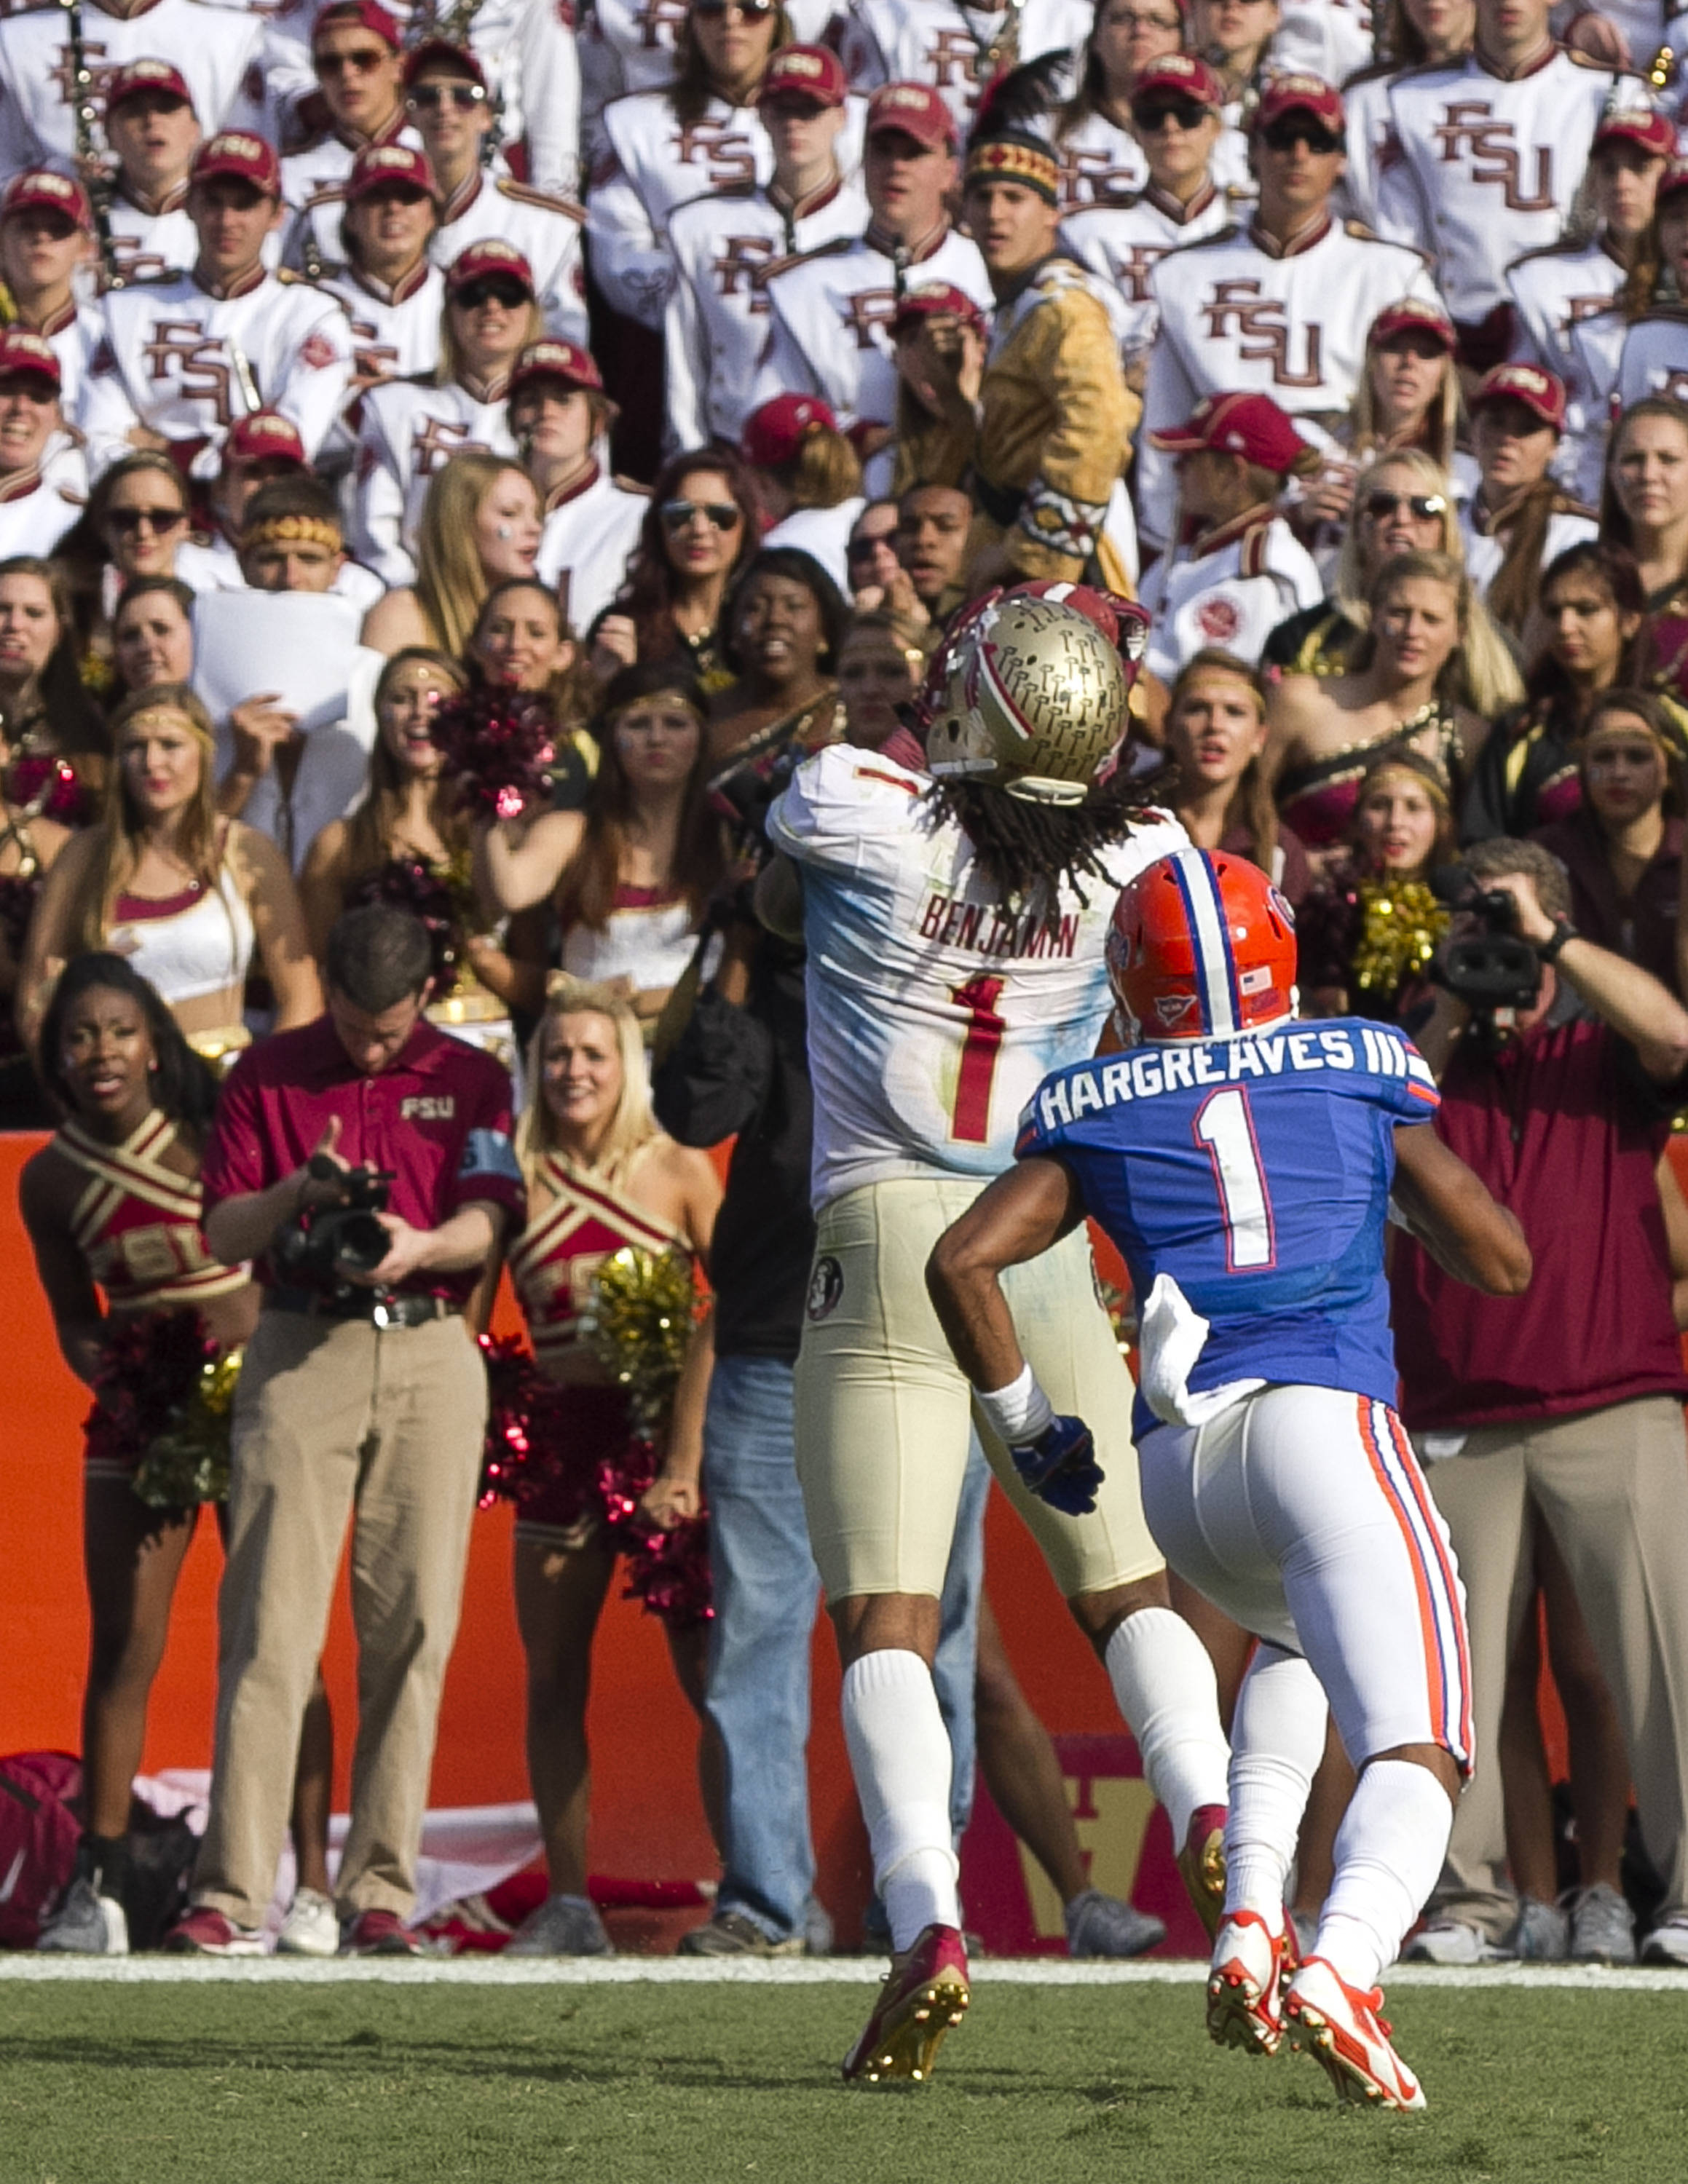 Kelvin Benjamin (1) with his third touchdown catch, FSU vs Florida, 11-30-13,  (Photo by Steve Musco)